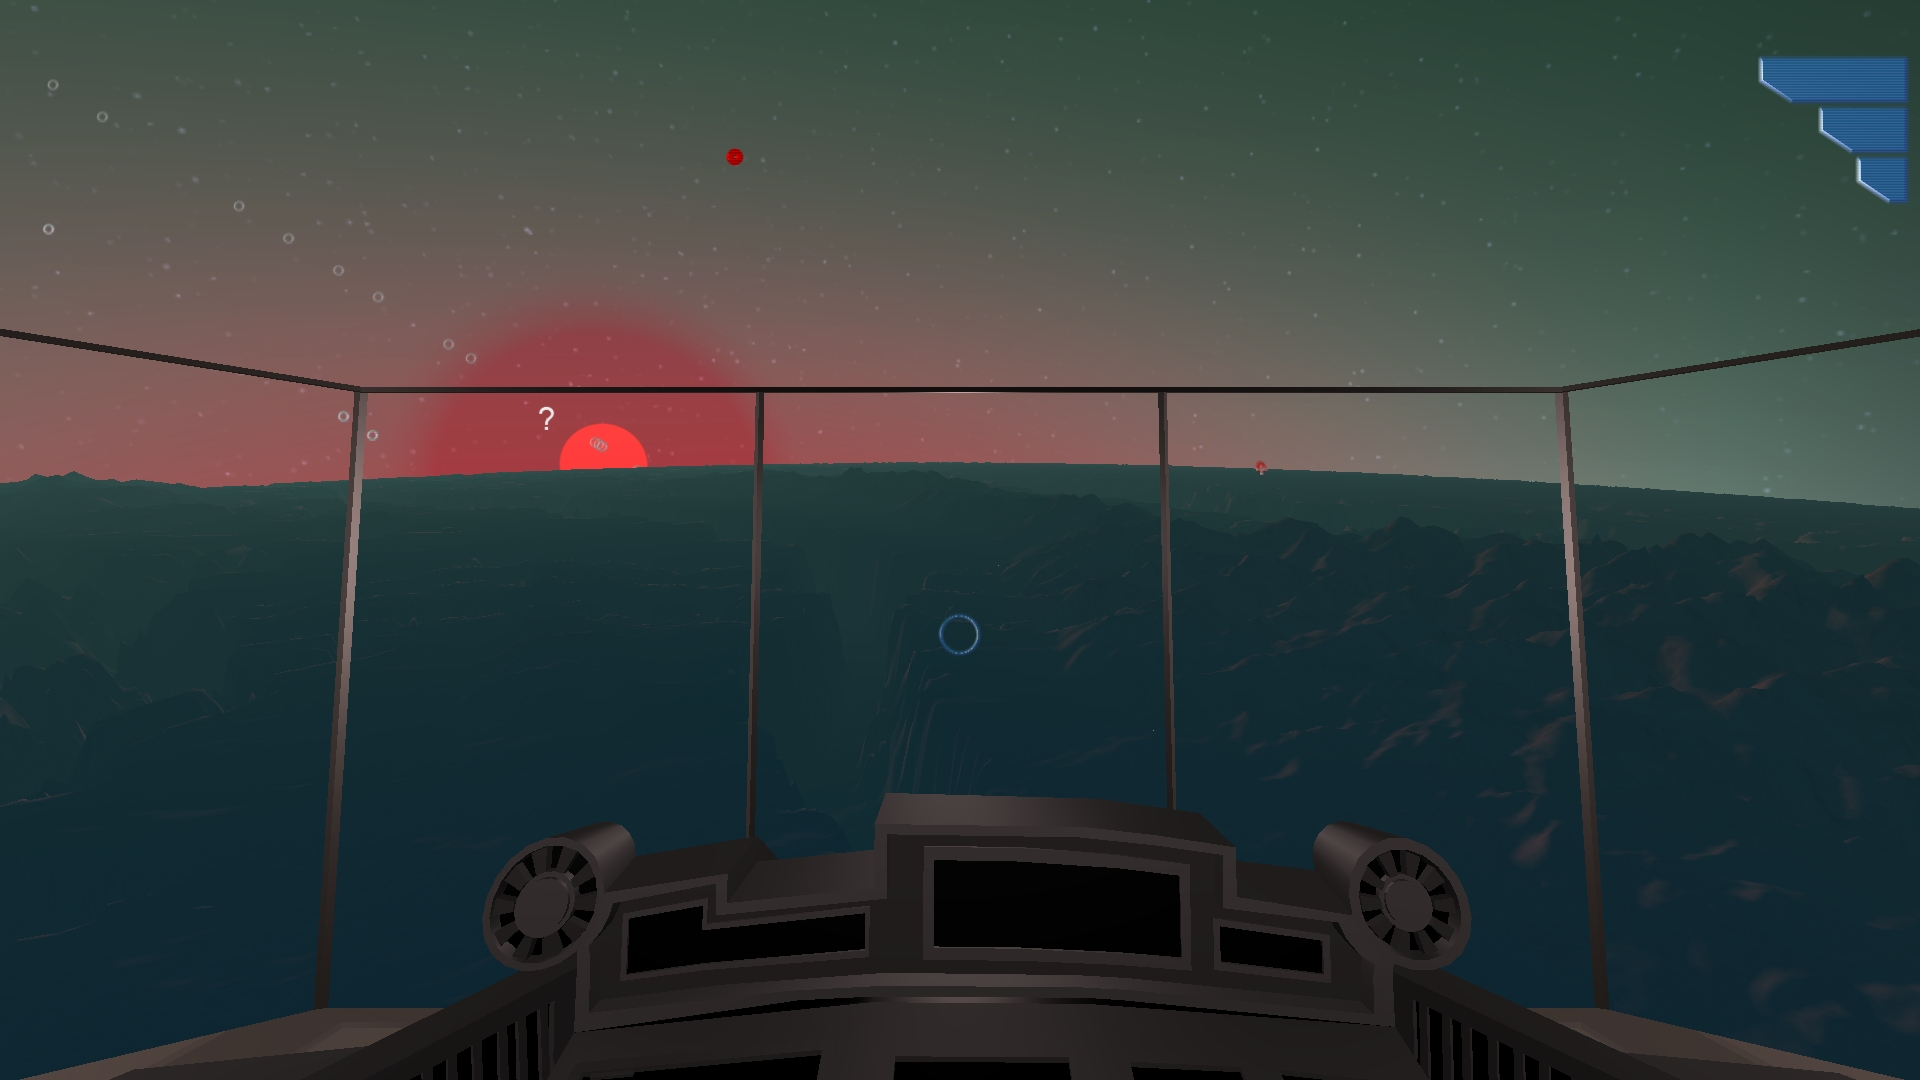 Rodina Screenshot 1